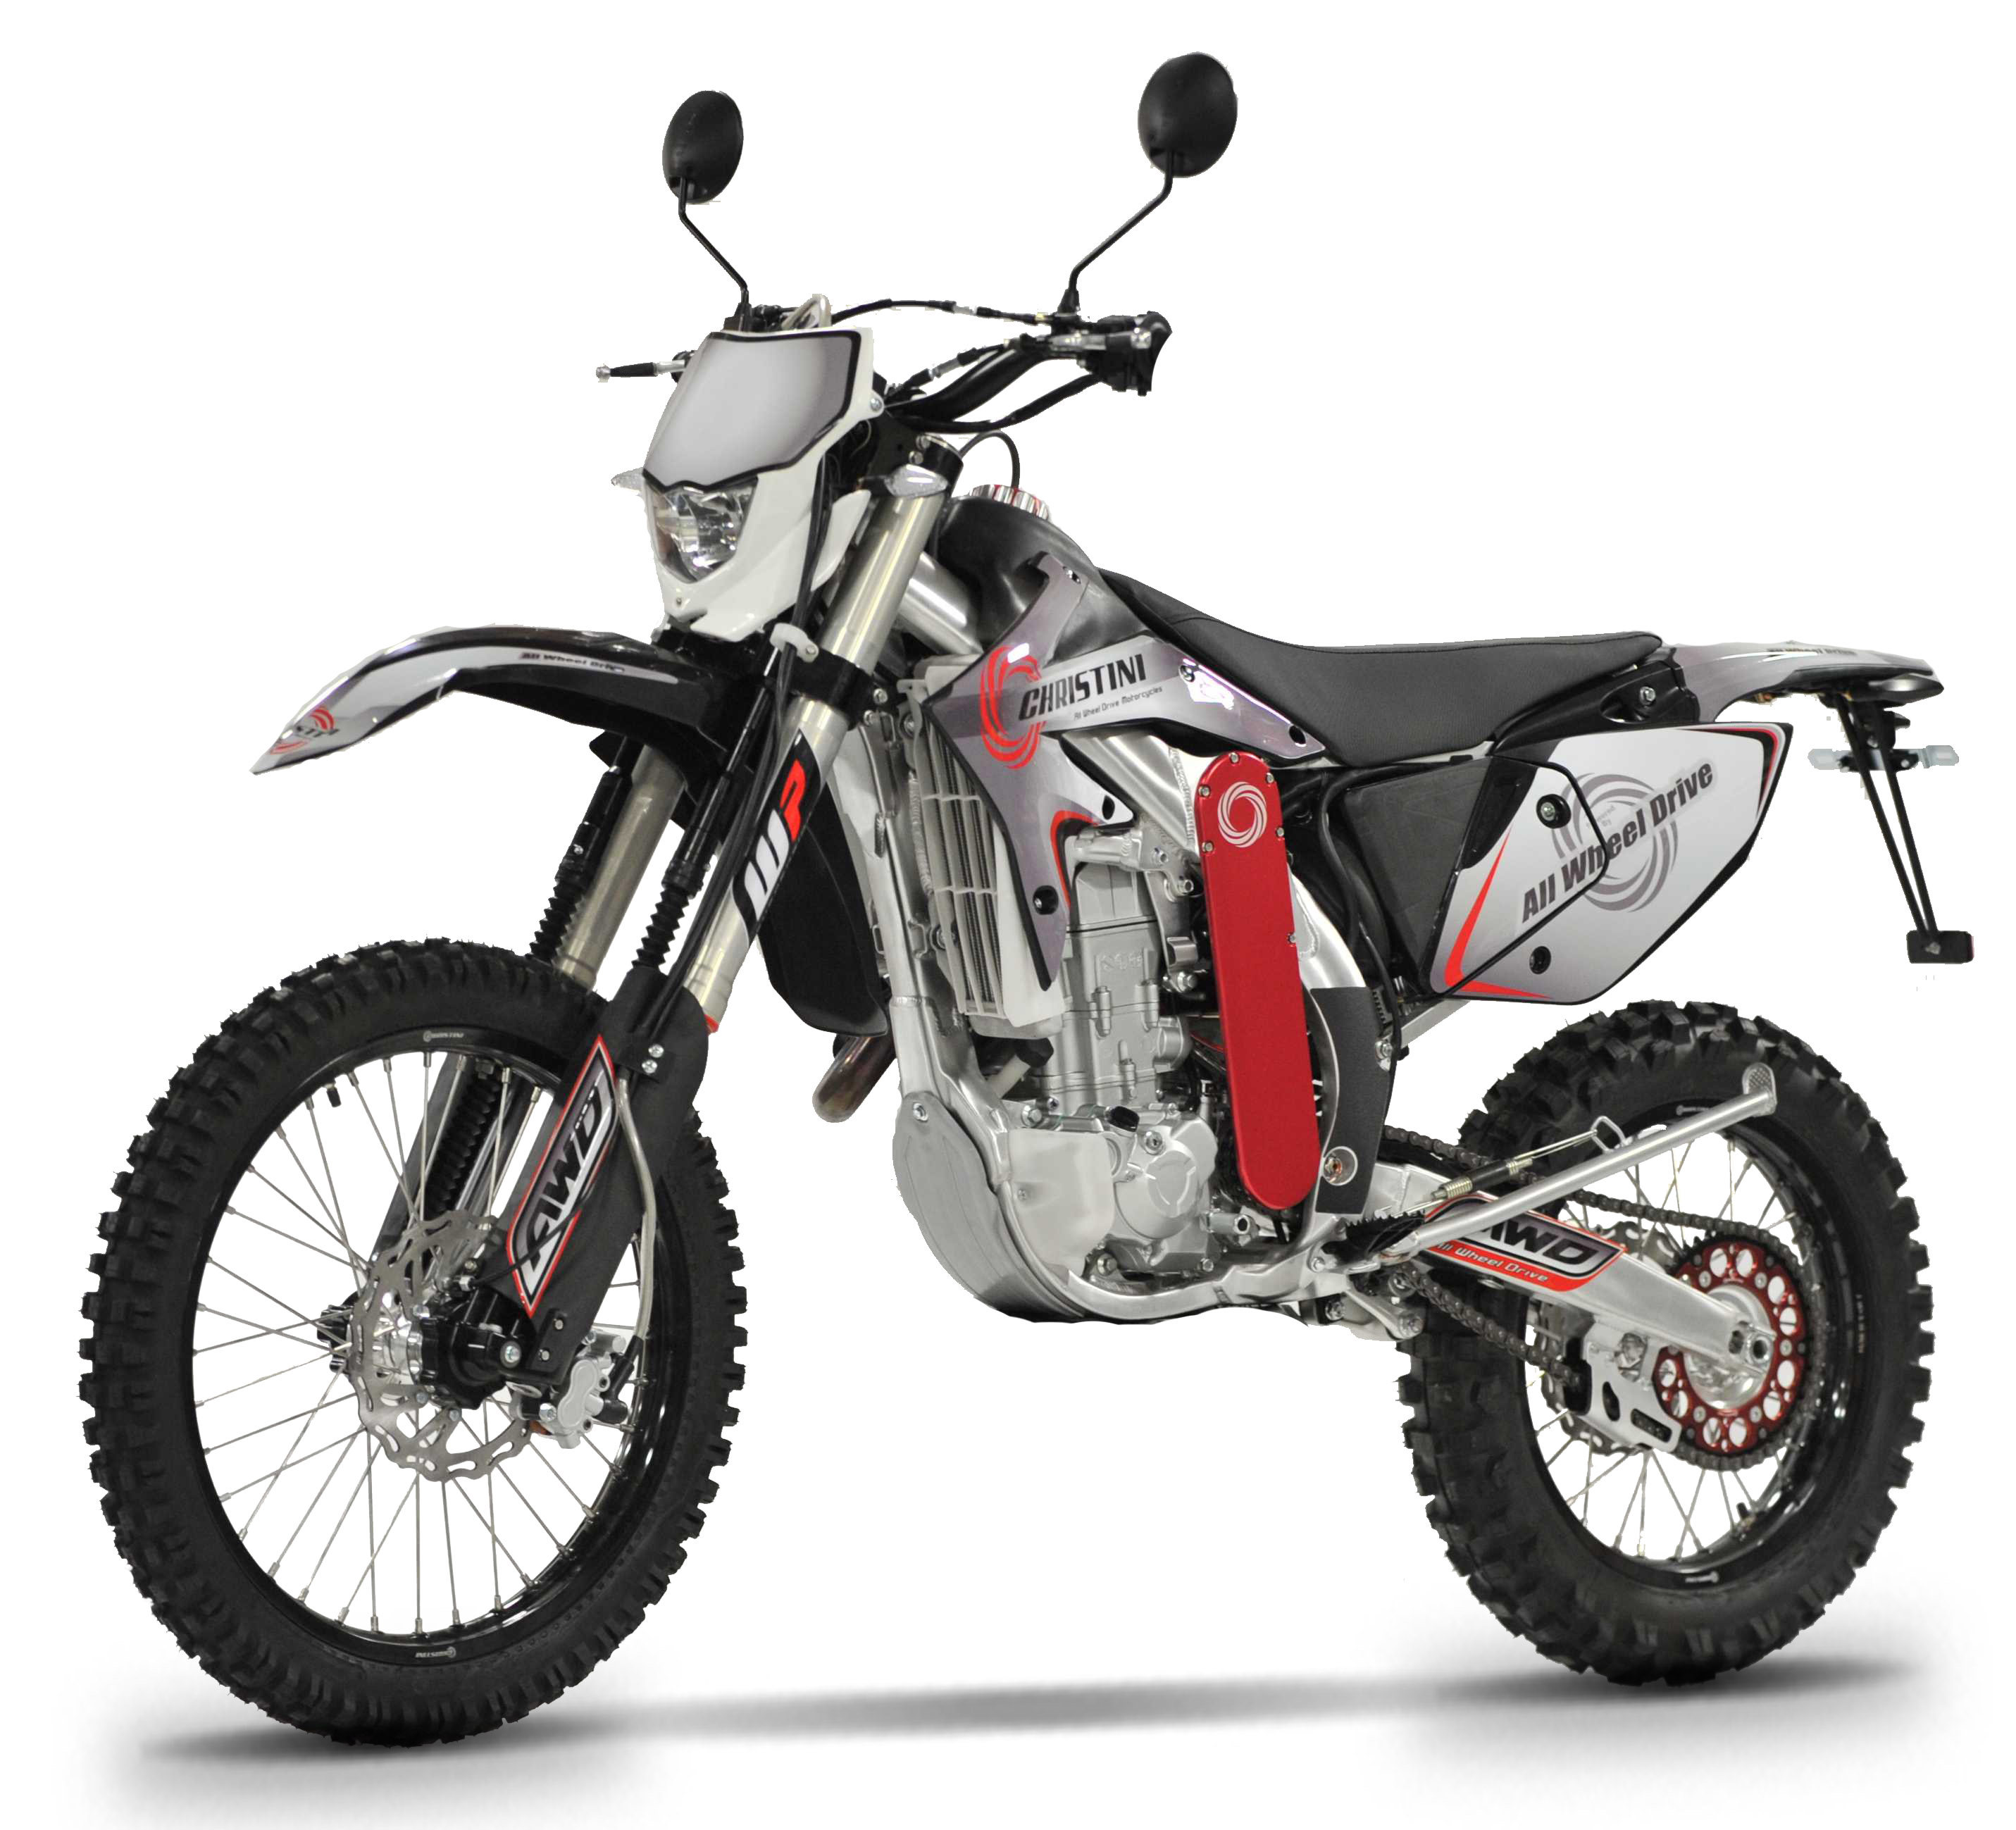 CHRISTINI All Wheel Drive Motorcycles receive CARB approval for their All Wheel Drive 450 Dual Sport & launch consumer financing program